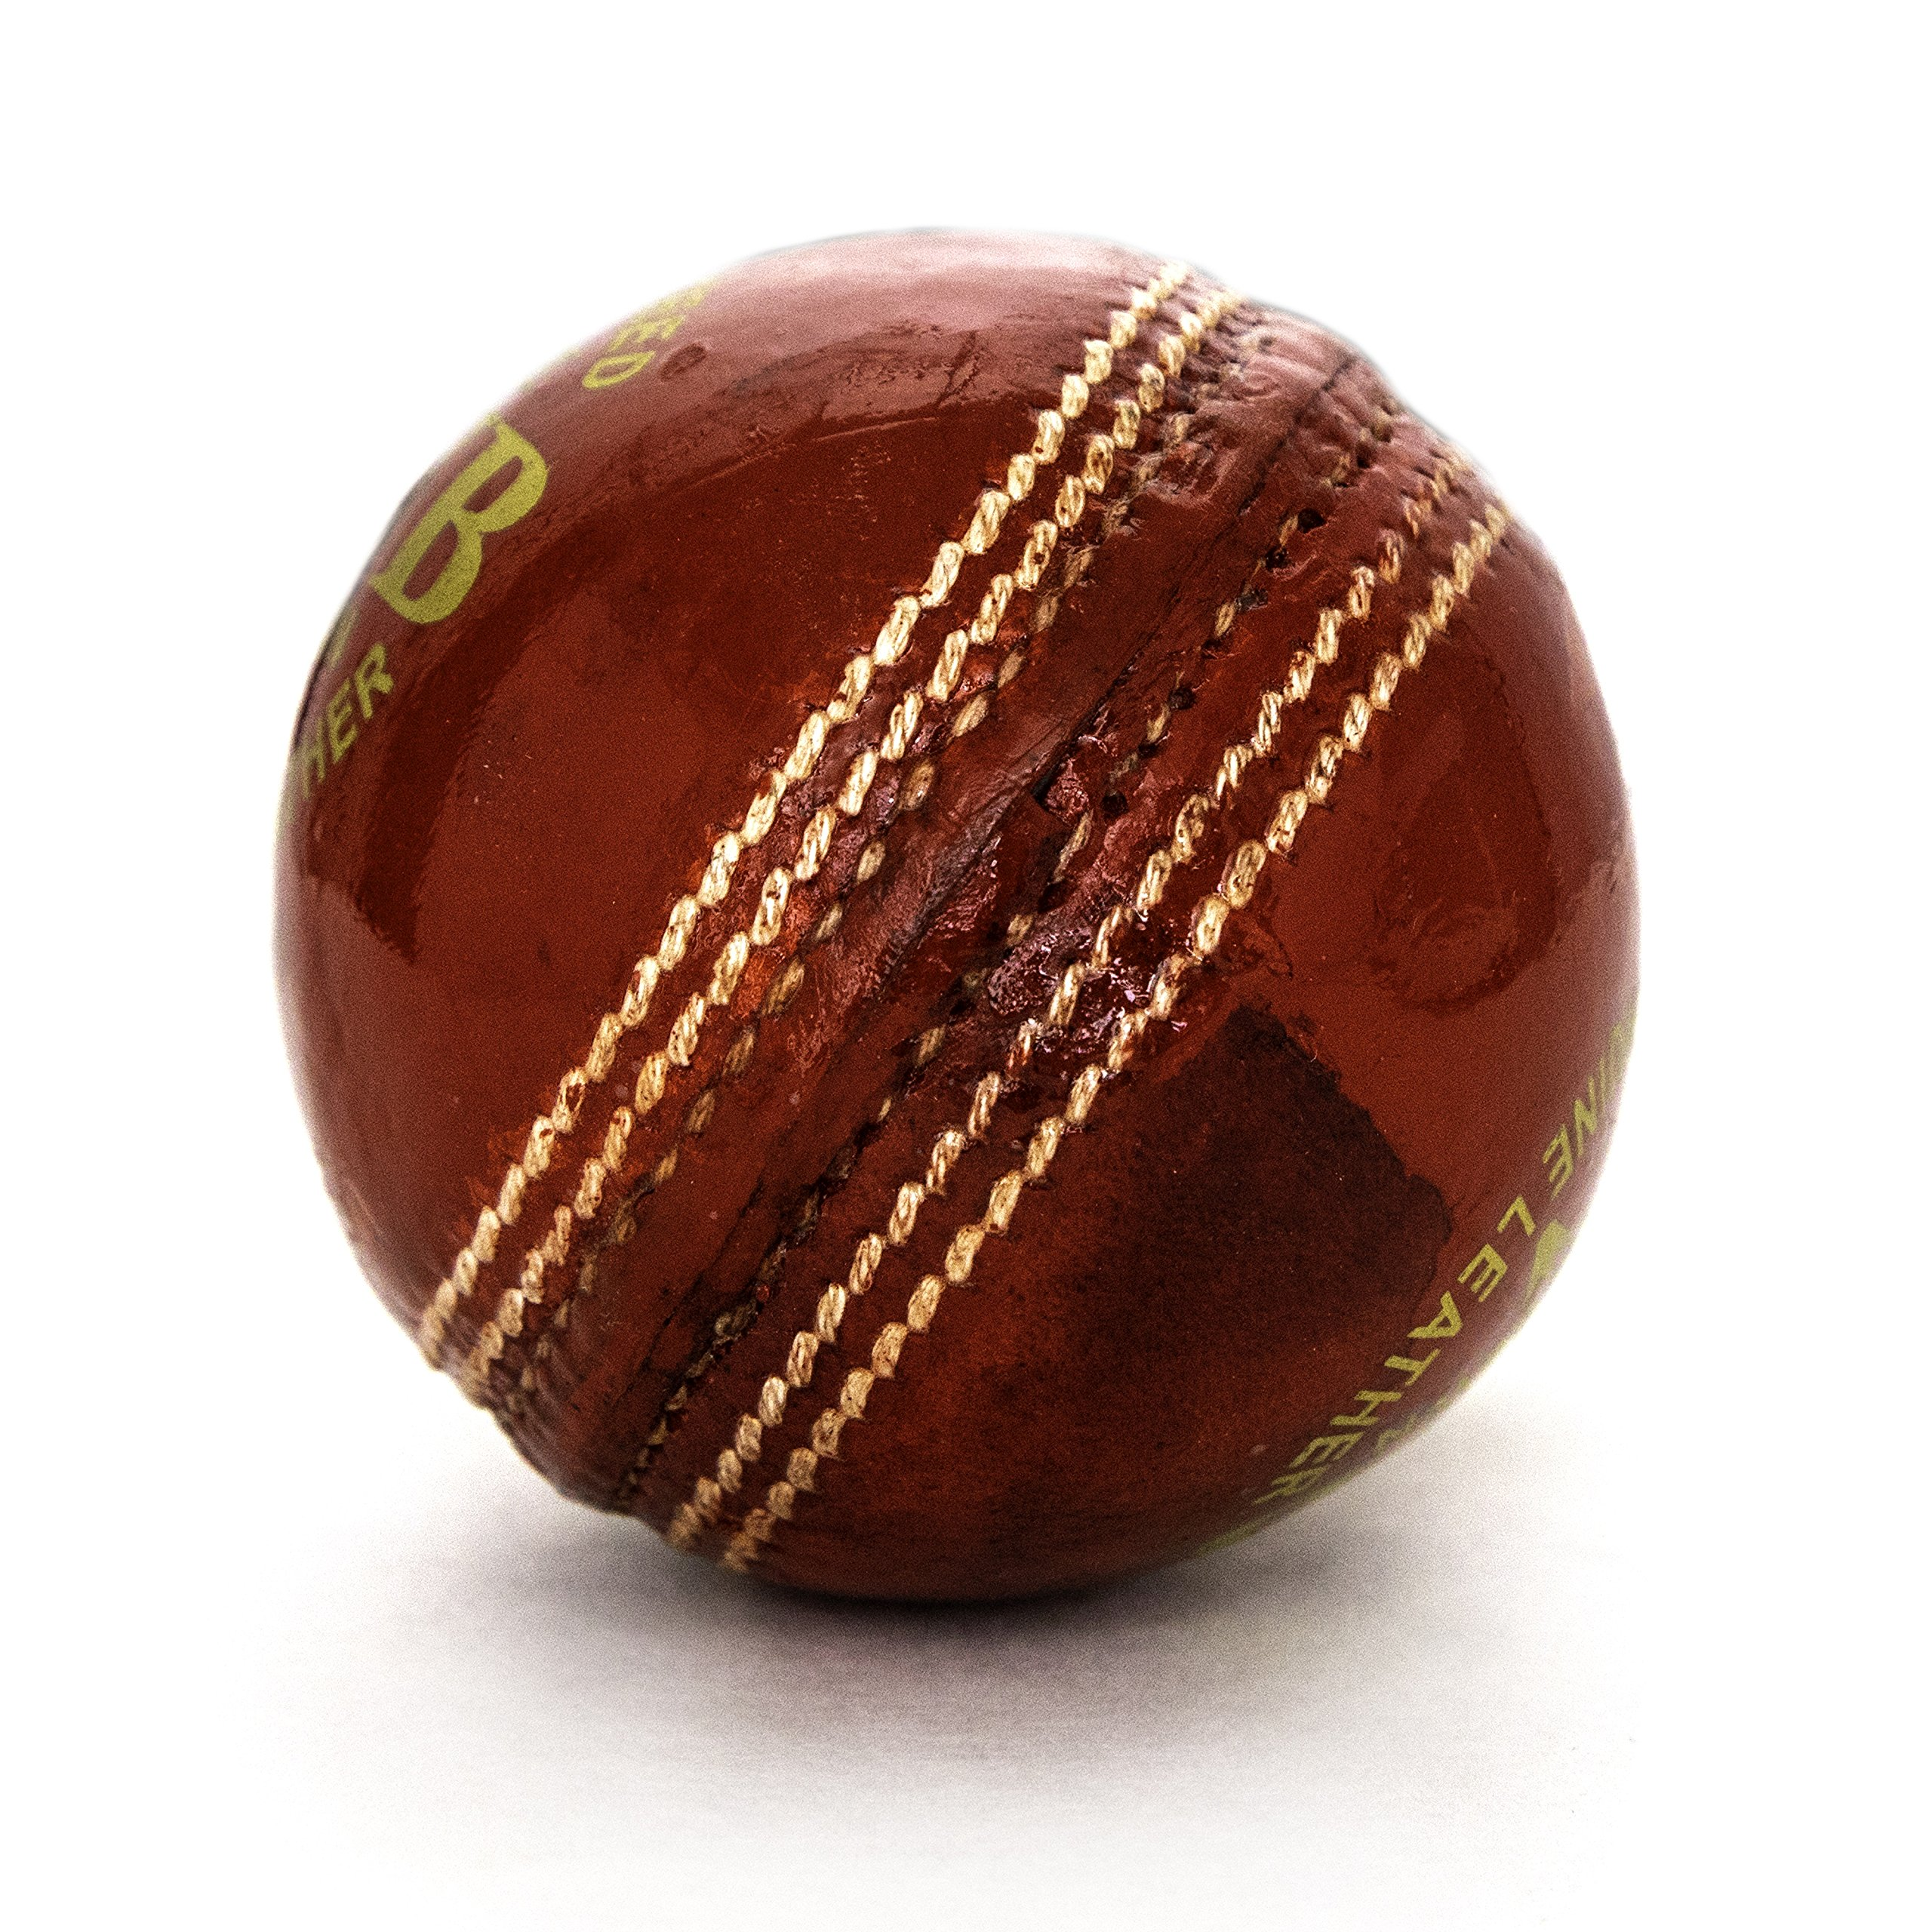 Pro Impact Club Play Leather Cricket Ball (1 Ball)